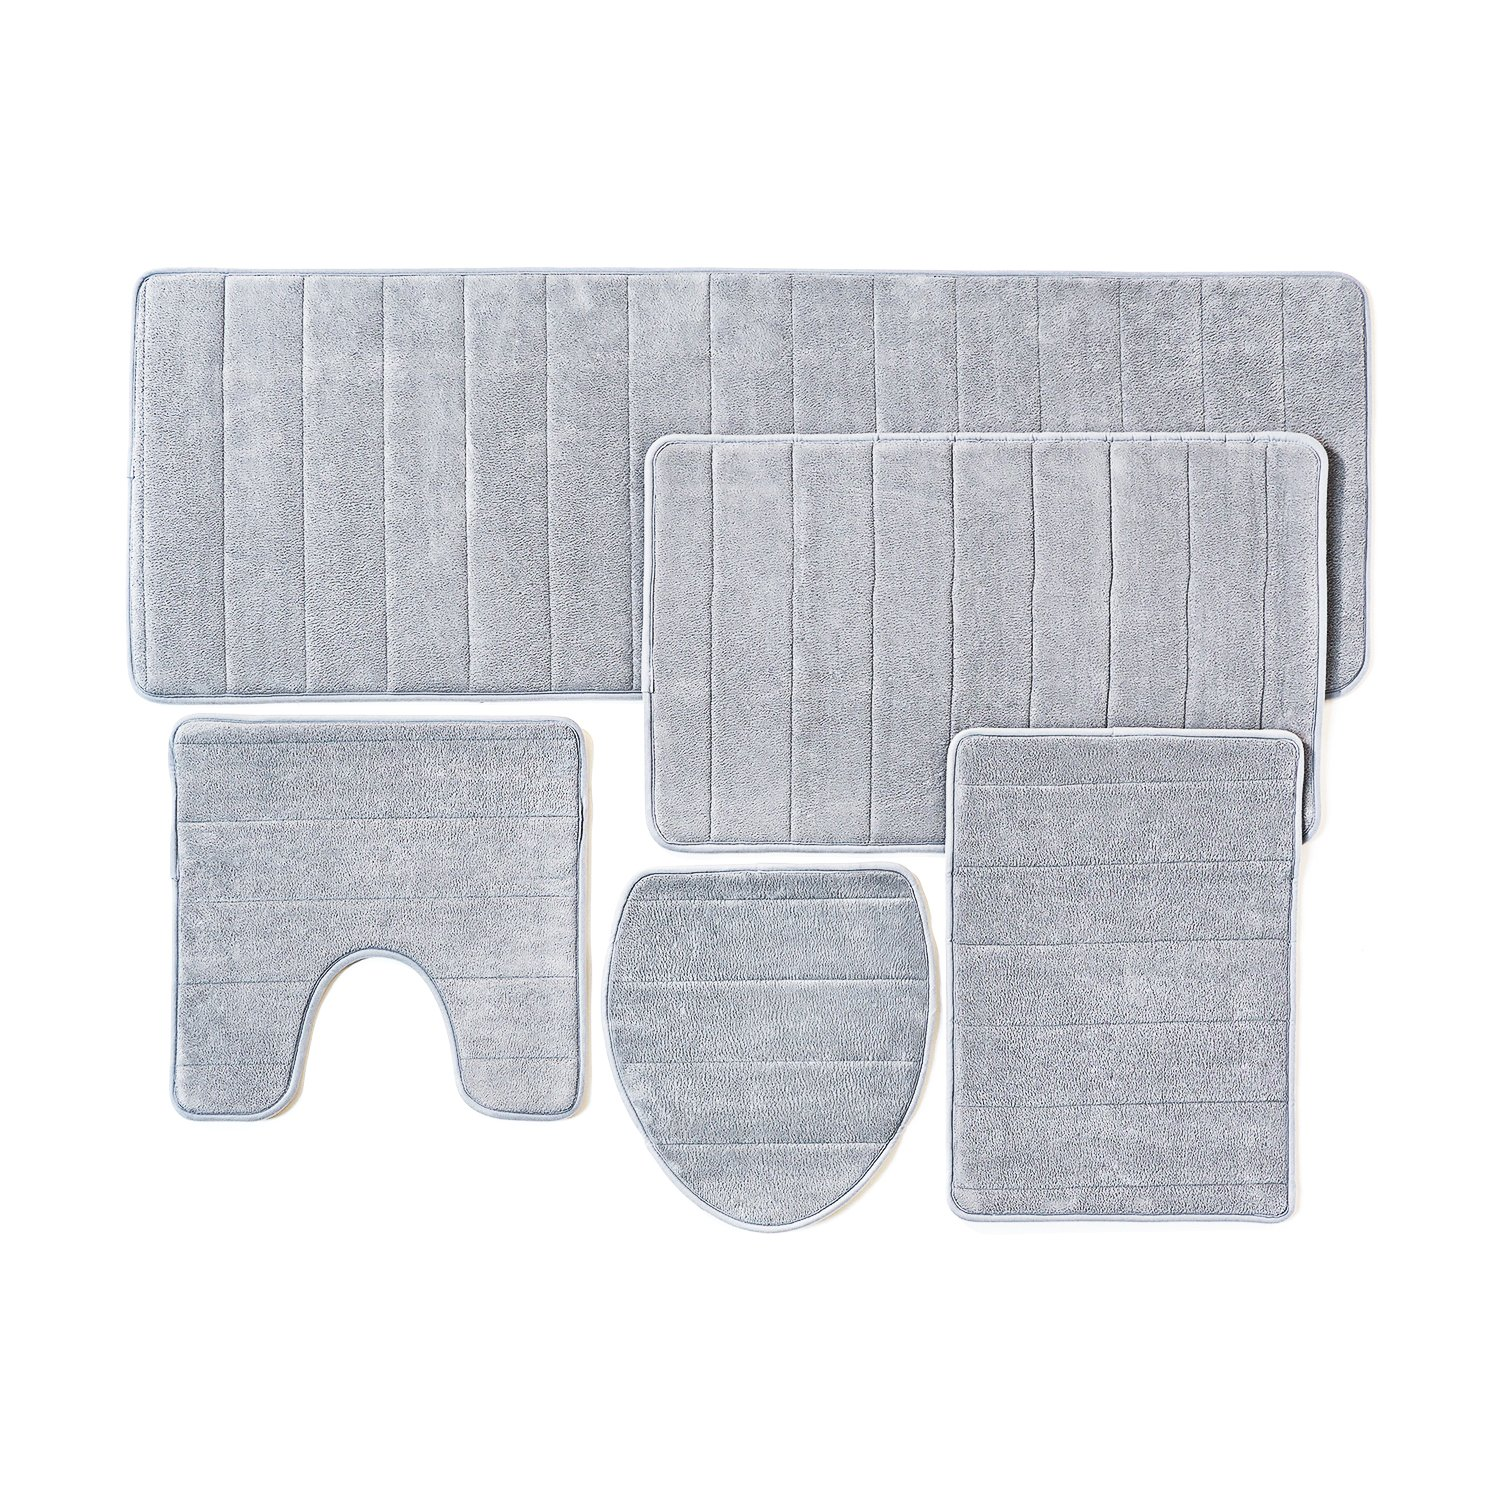 Amazon.com: Bathroom Rug Mat, 5-Piece Set Memory Foam, Extra Soft ...